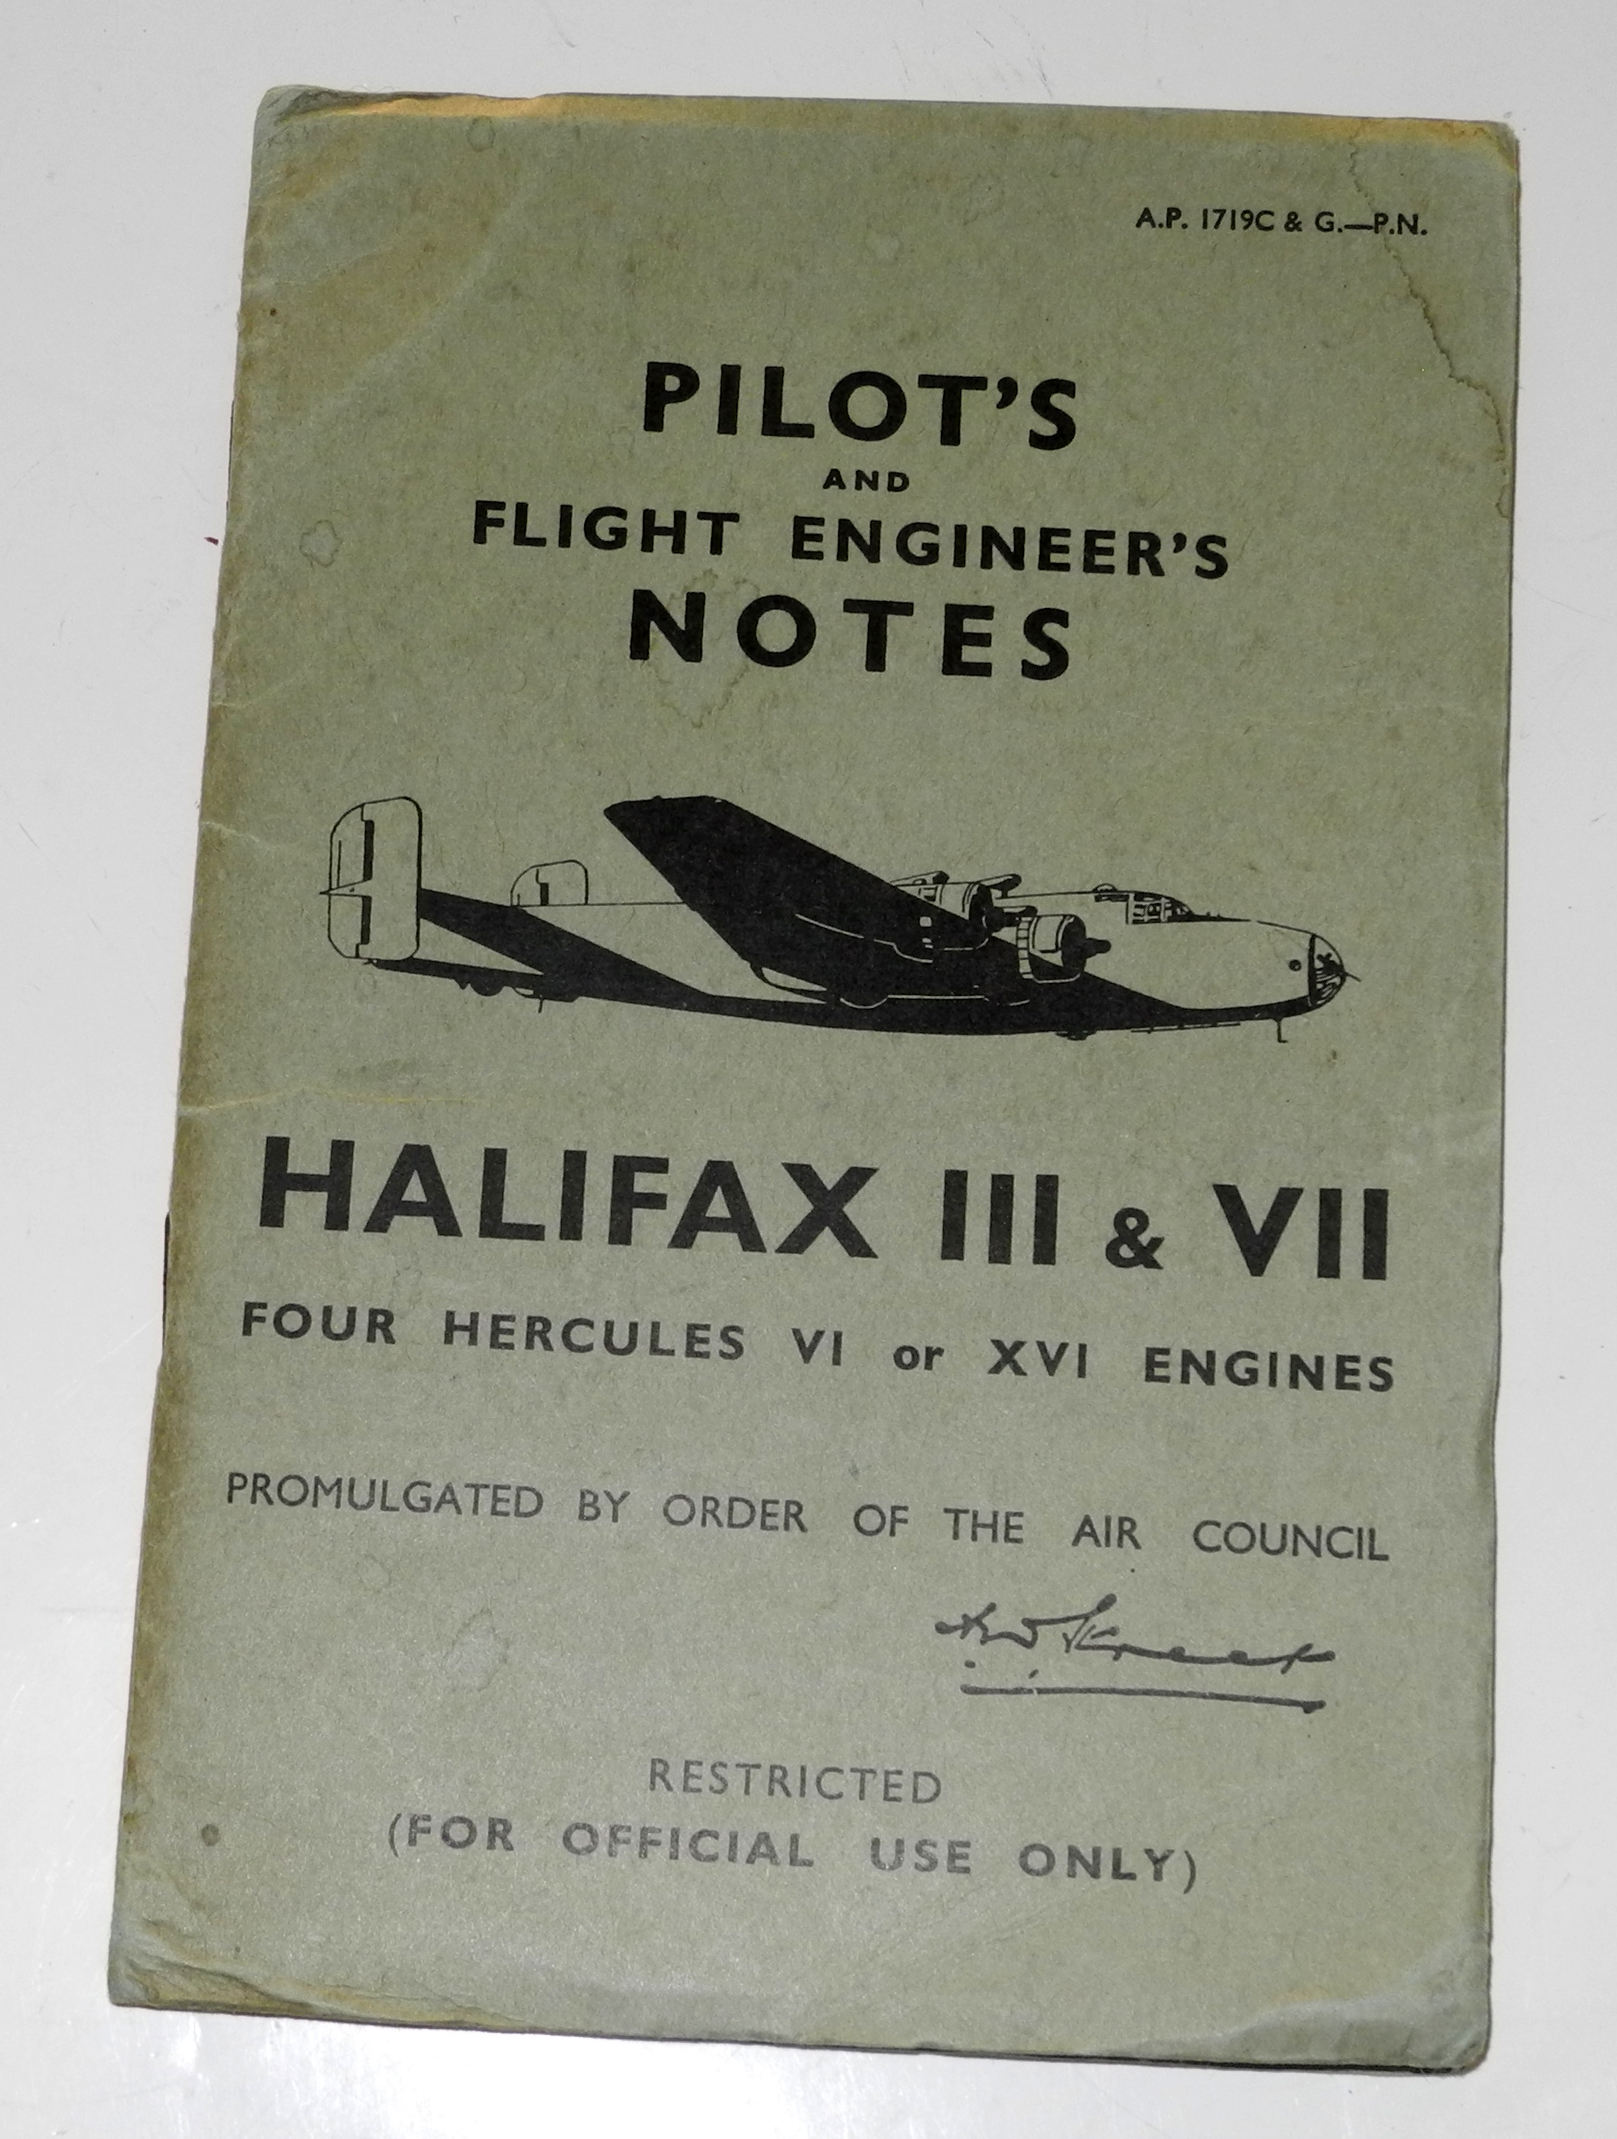 RAF Pilot's Notes for Halifax